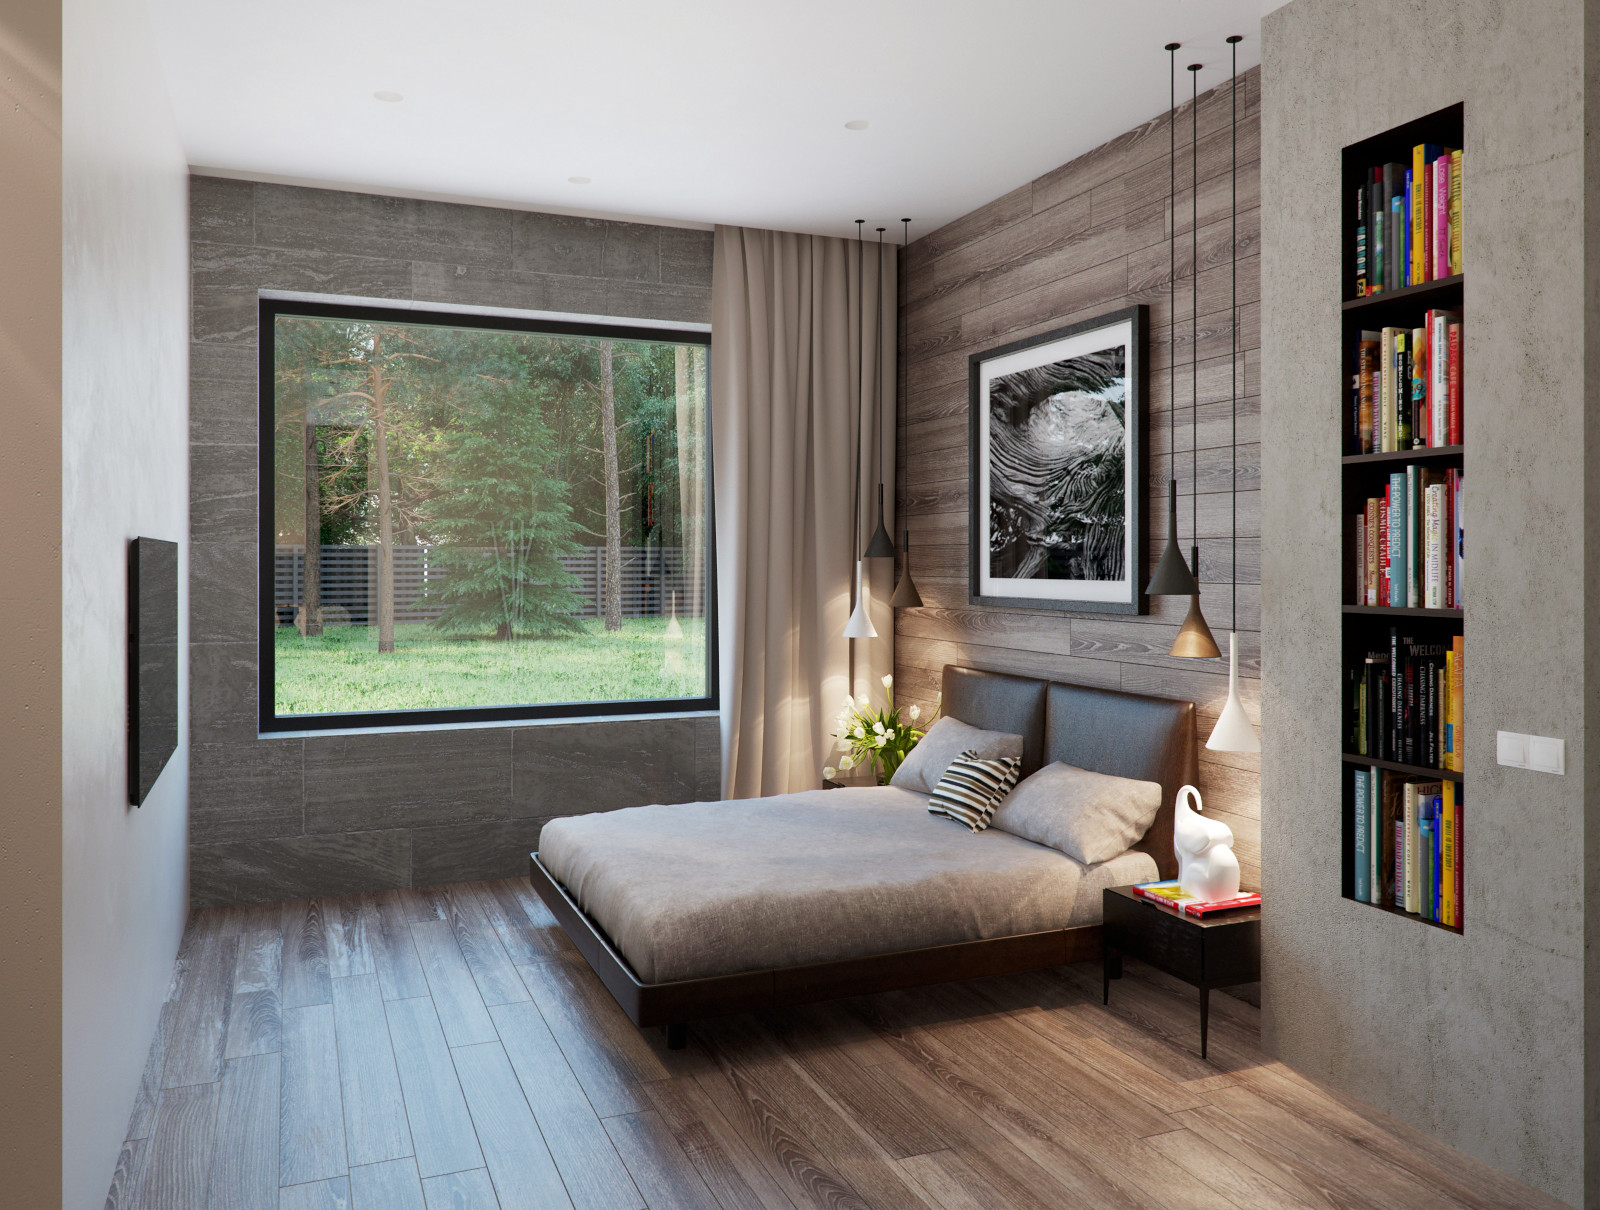 Best ideas about Small Bedroom Ideas . Save or Pin 20 Best Small Modern Bedroom Ideas Architecture Beast Now.